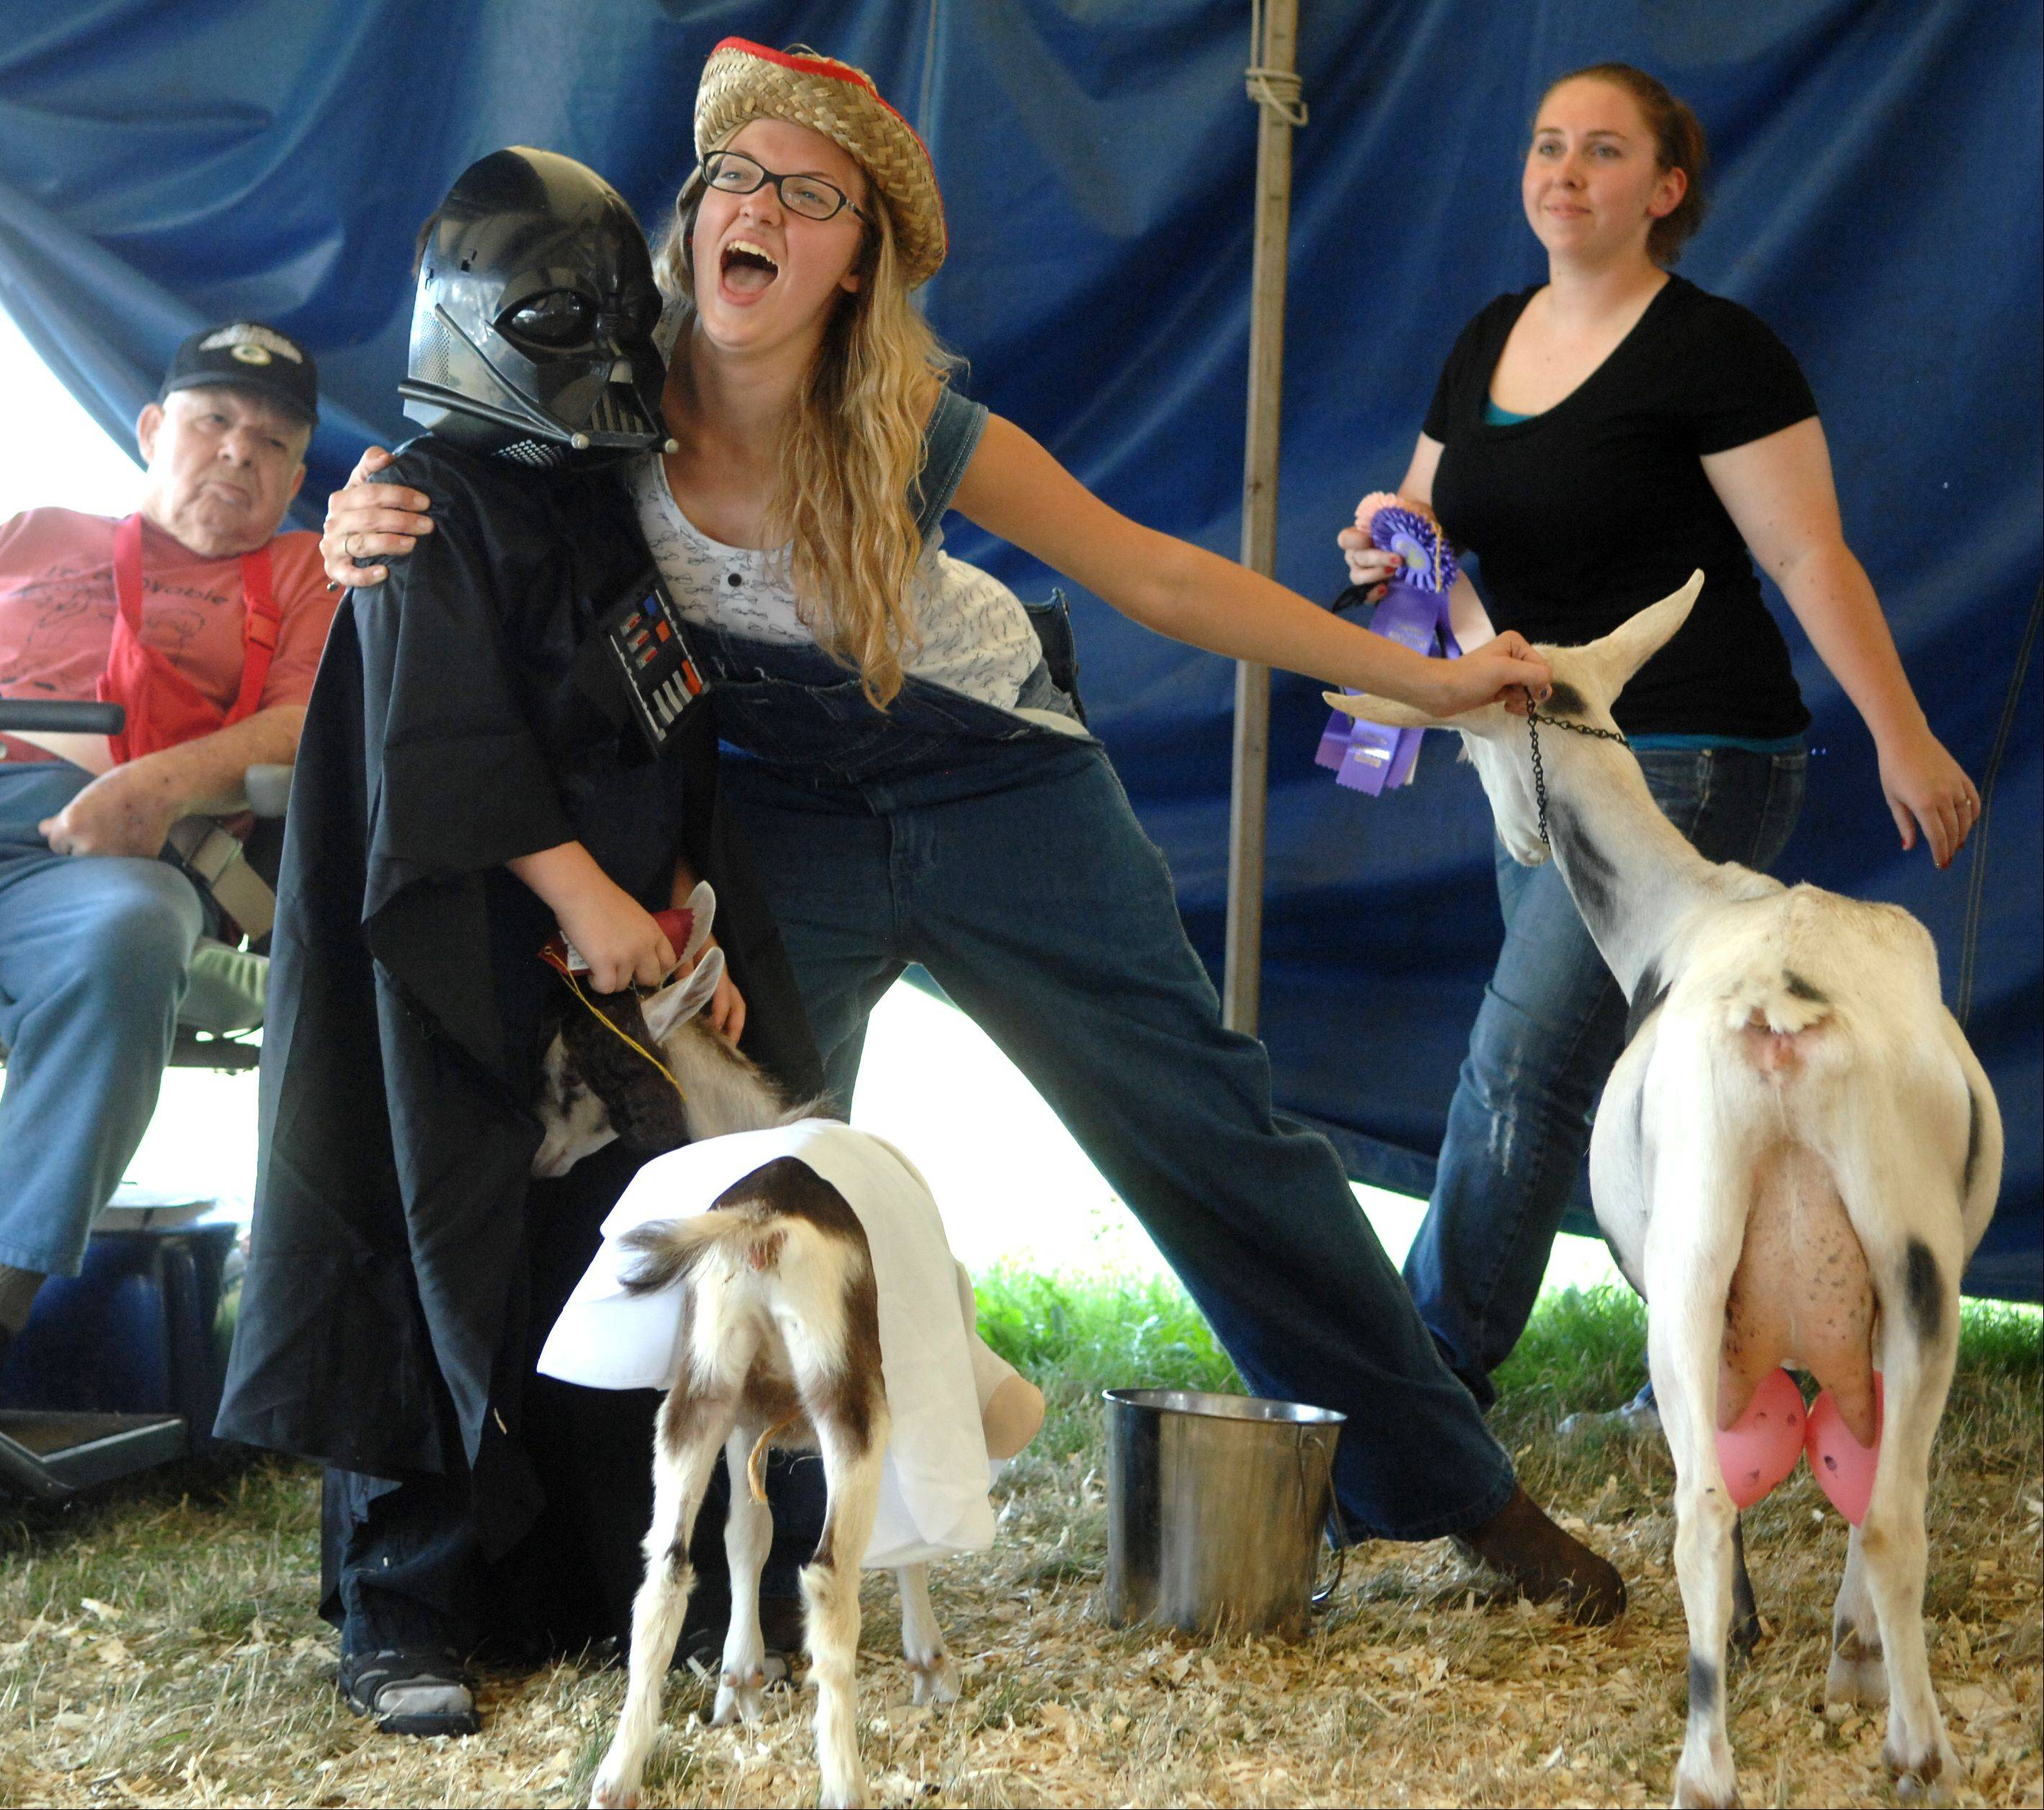 Braydin Winn (Darth Vader), 7, of Harvard gets a hug from Jordann Bauer, 19, of Lake Geneva as they hear the results of the goat costume contest during day two of the McHenry County Fair in Woodstock Thursday. Bauer won best in show with her dairy farmer costume. She painted spots on her goat and made a couple of extra udders out of balloons.